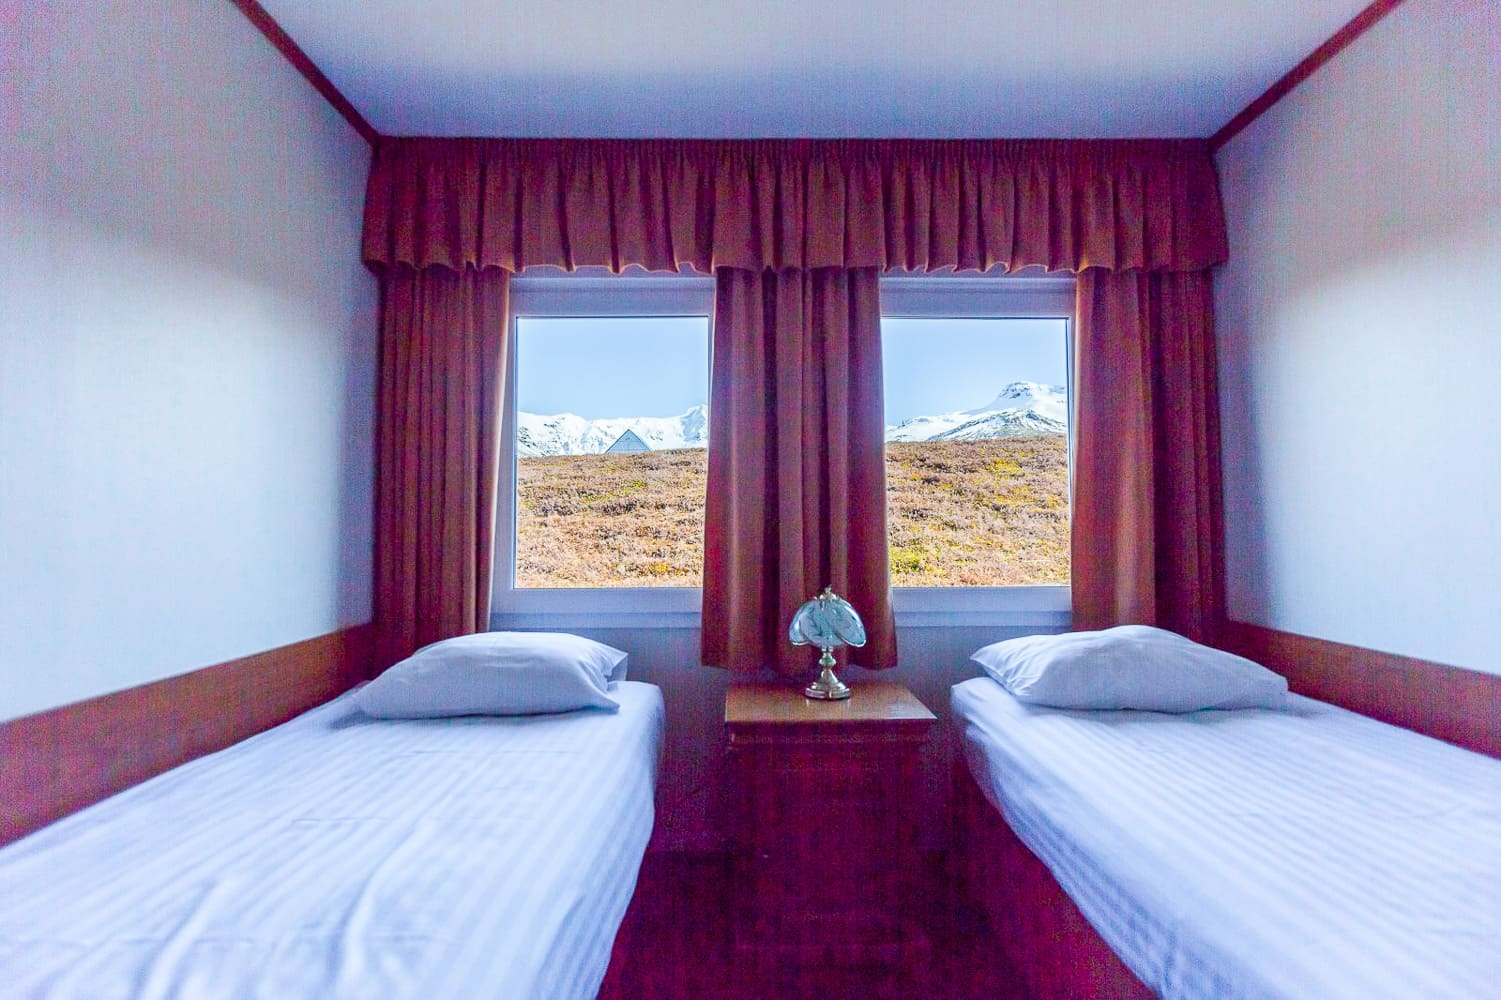 Hotel Skaftafell room with a view